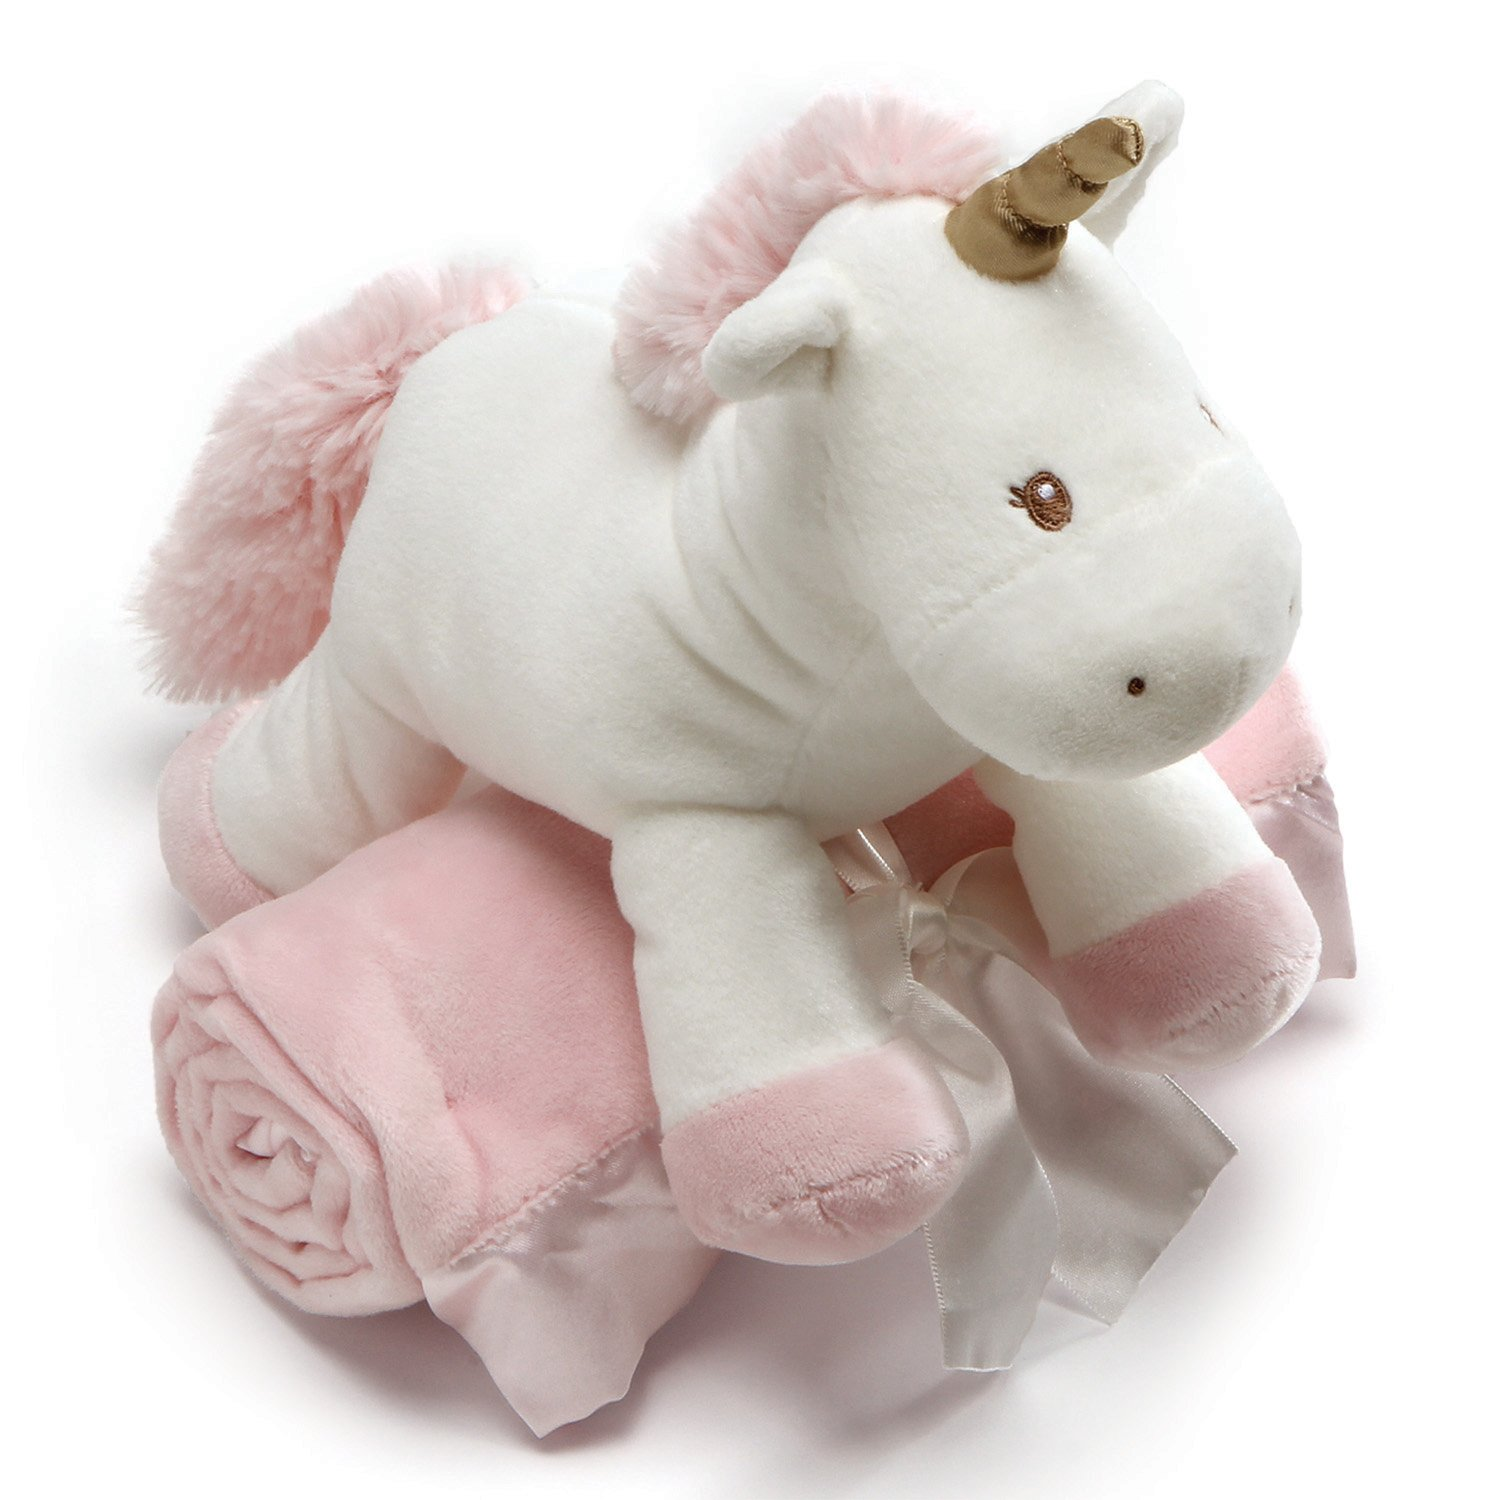 Baby GUND Luna Unicorn with Pink Blanket Stuffed Animal Plush, Set of 2, 7""